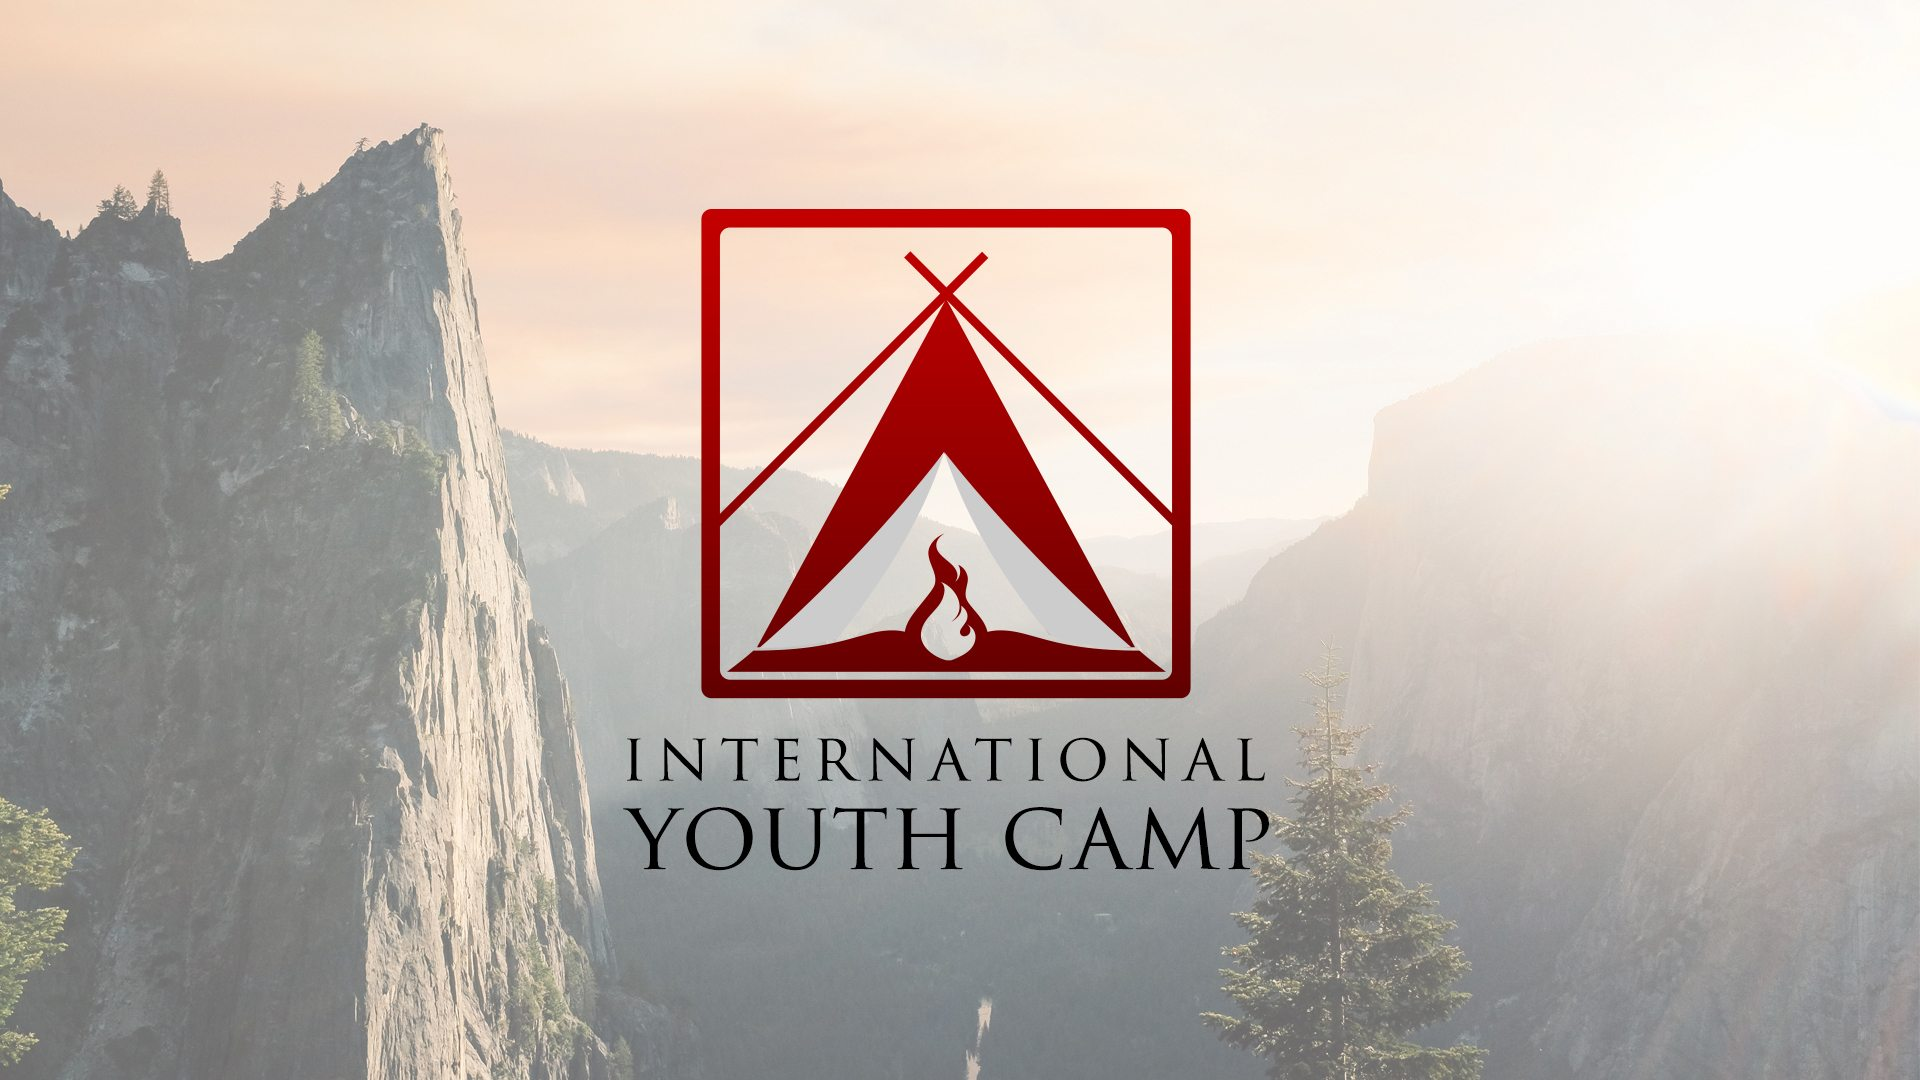 International Youth Camp - The Church of God ...